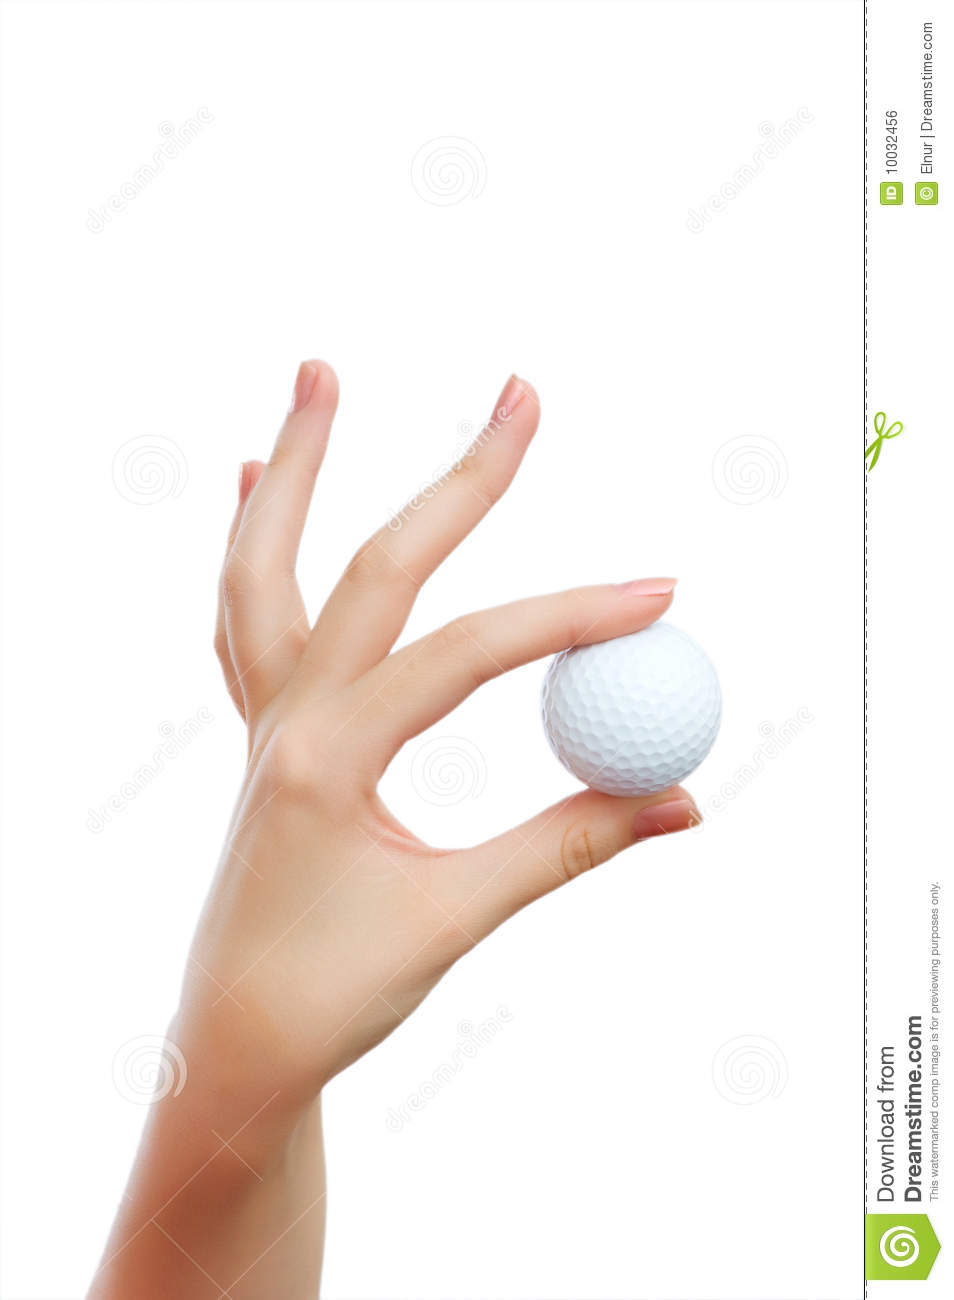 Hand Holding Golf Ball Royalty Free Stock Image - Image: 10032456